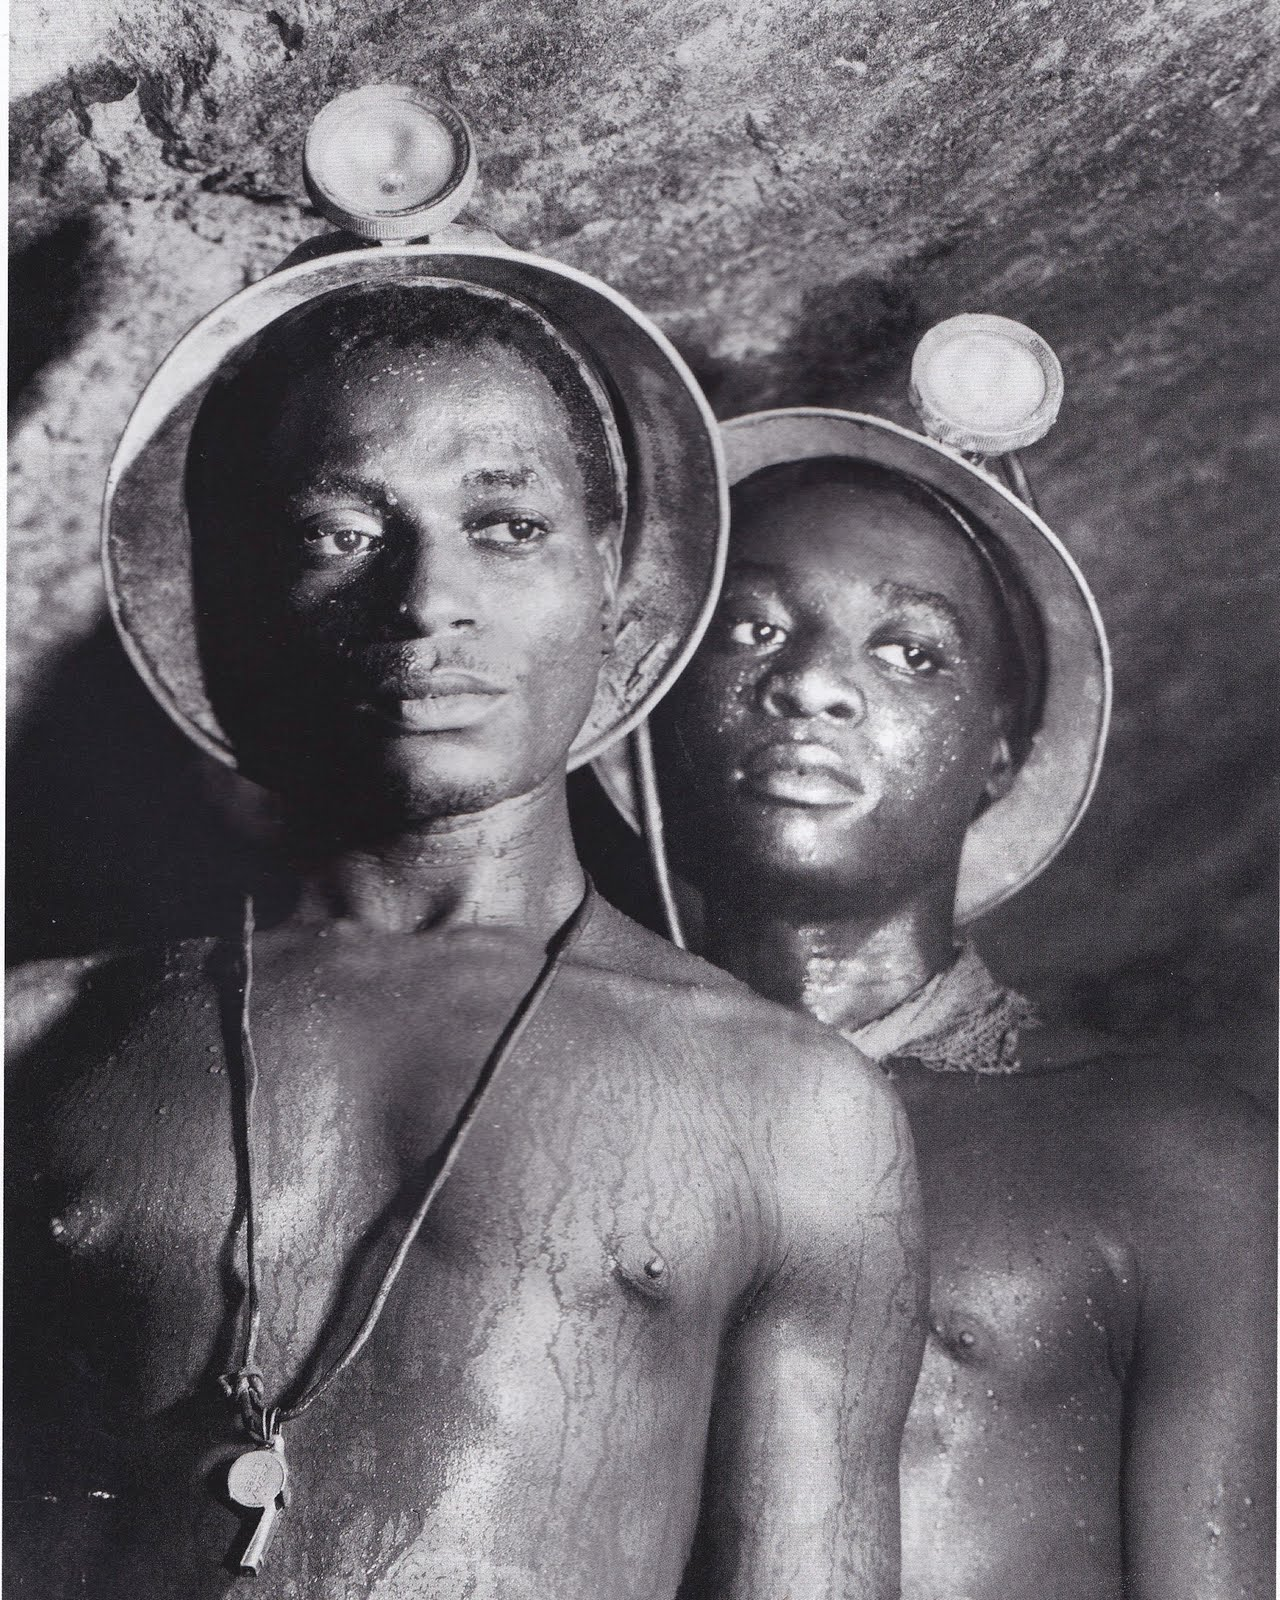 MBW Gold miners Soth Africa 1950.jpg